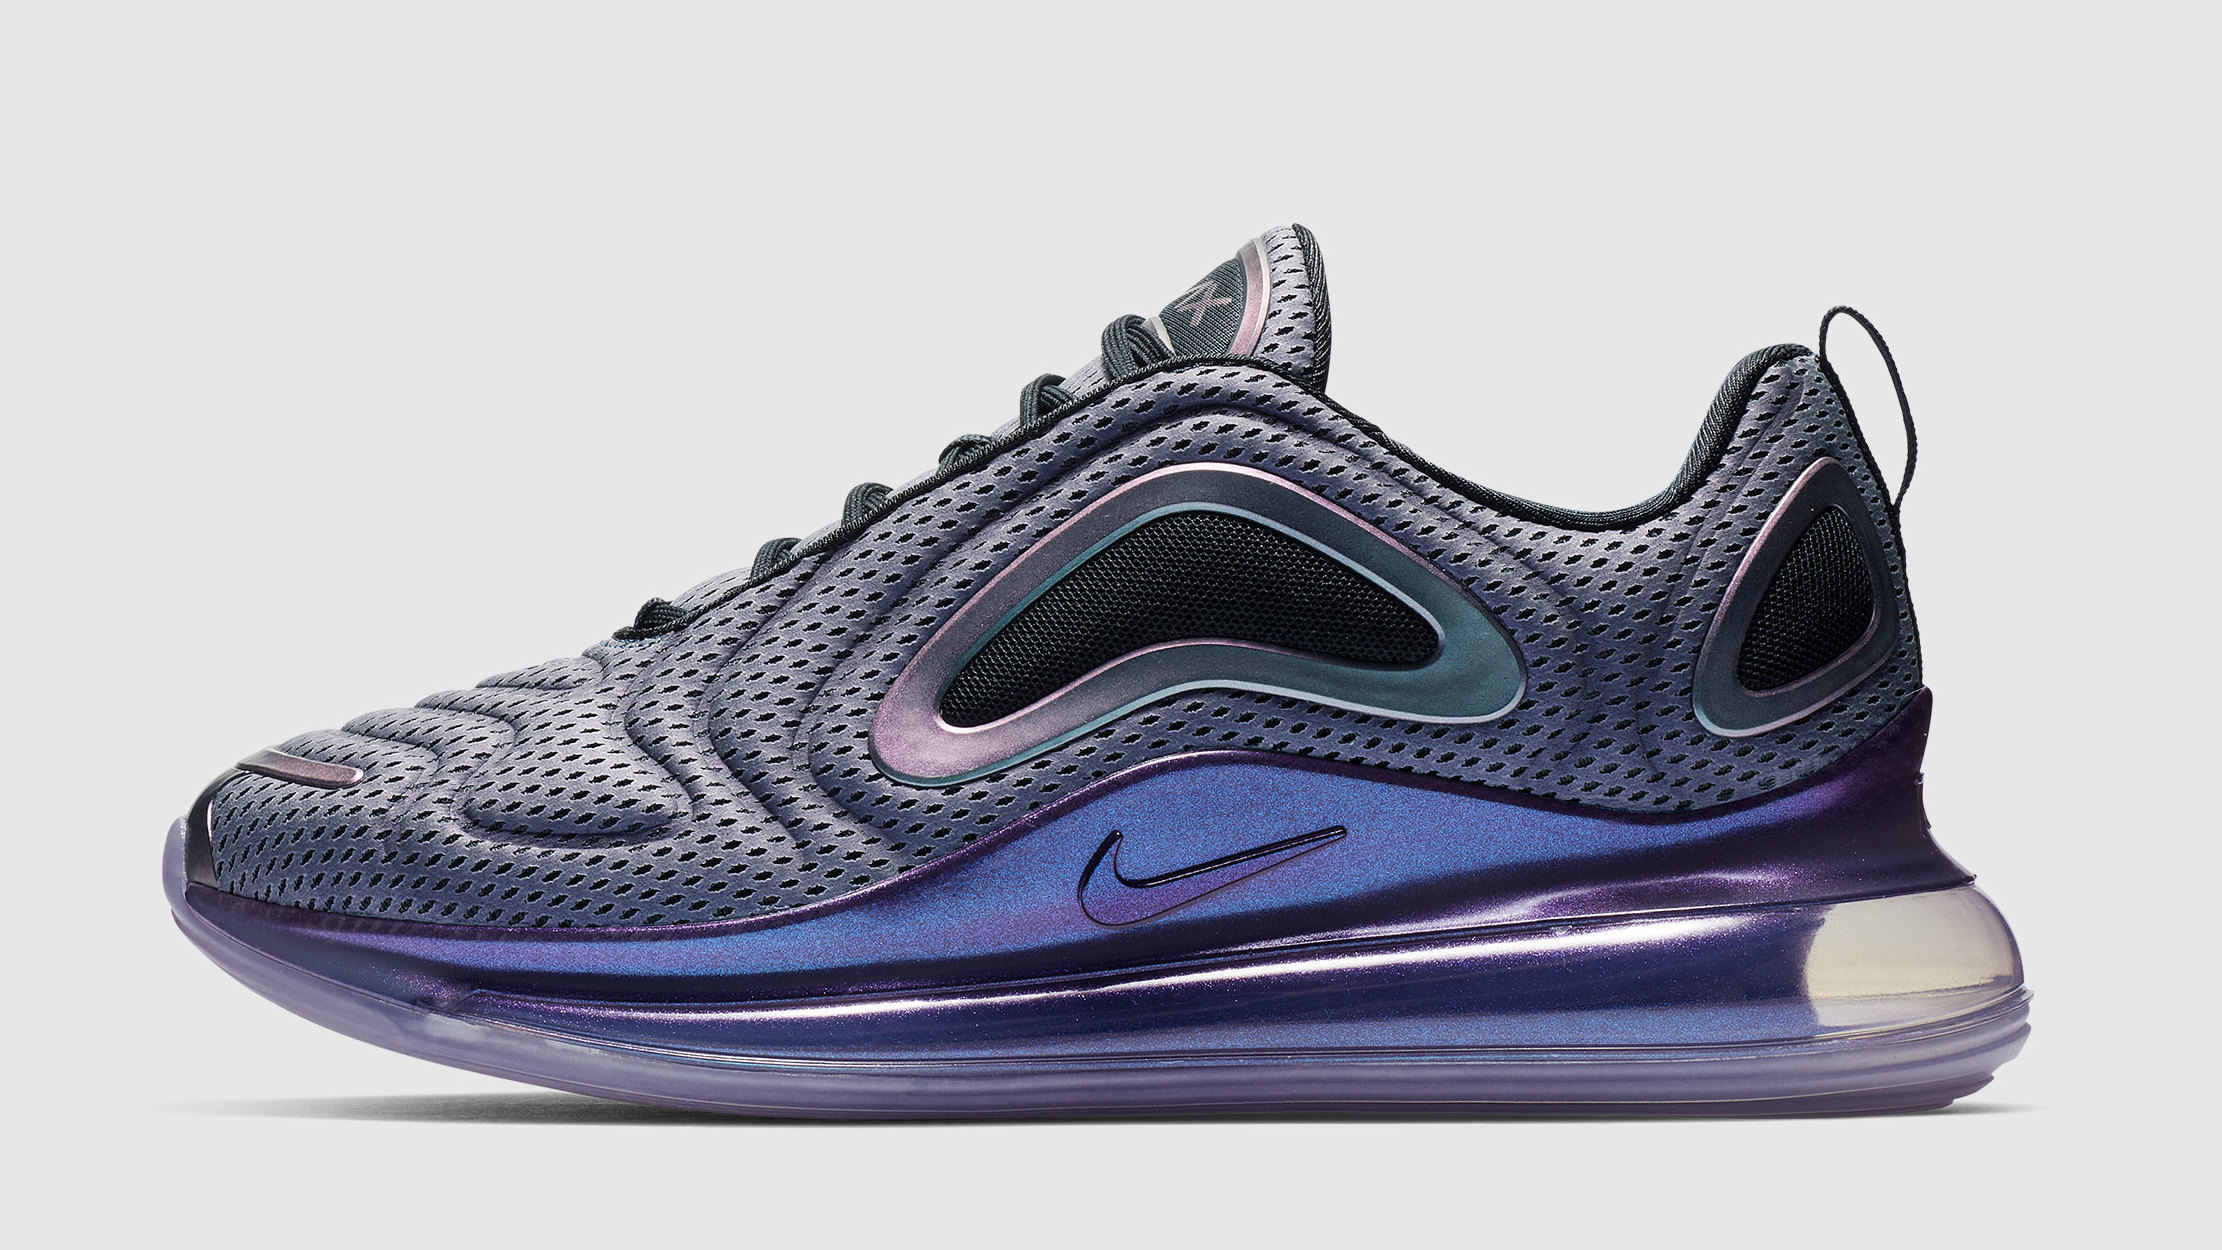 new arrivals 25ce8 1e20f Nike Air Max 720 Launch Colorways Release Date   Sole Collector